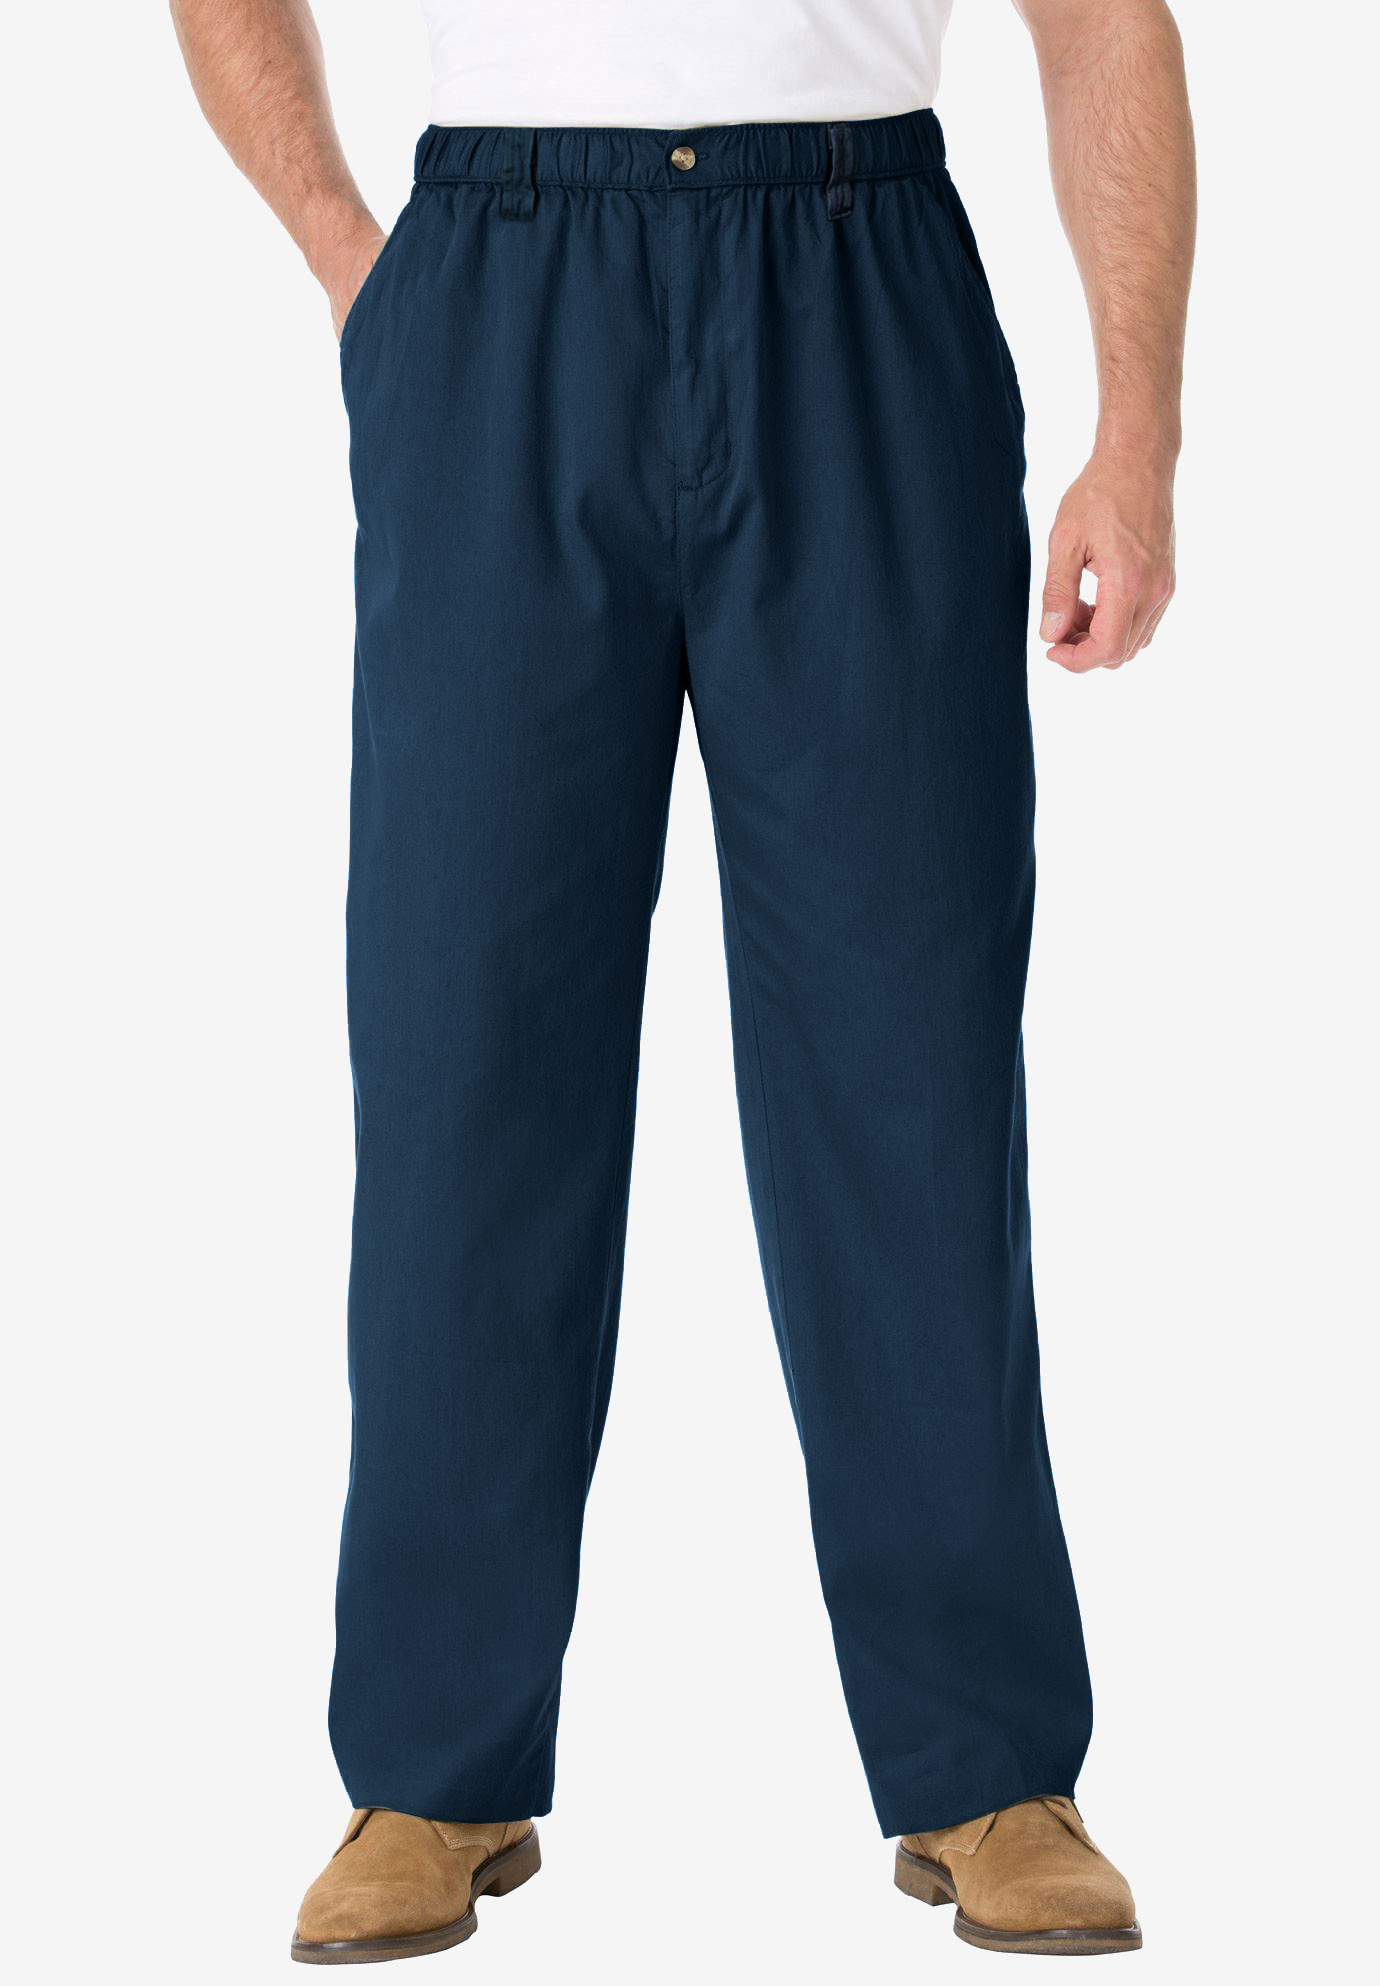 Knockarounds® Full-Elastic Waist Pants in Twill or Denim,